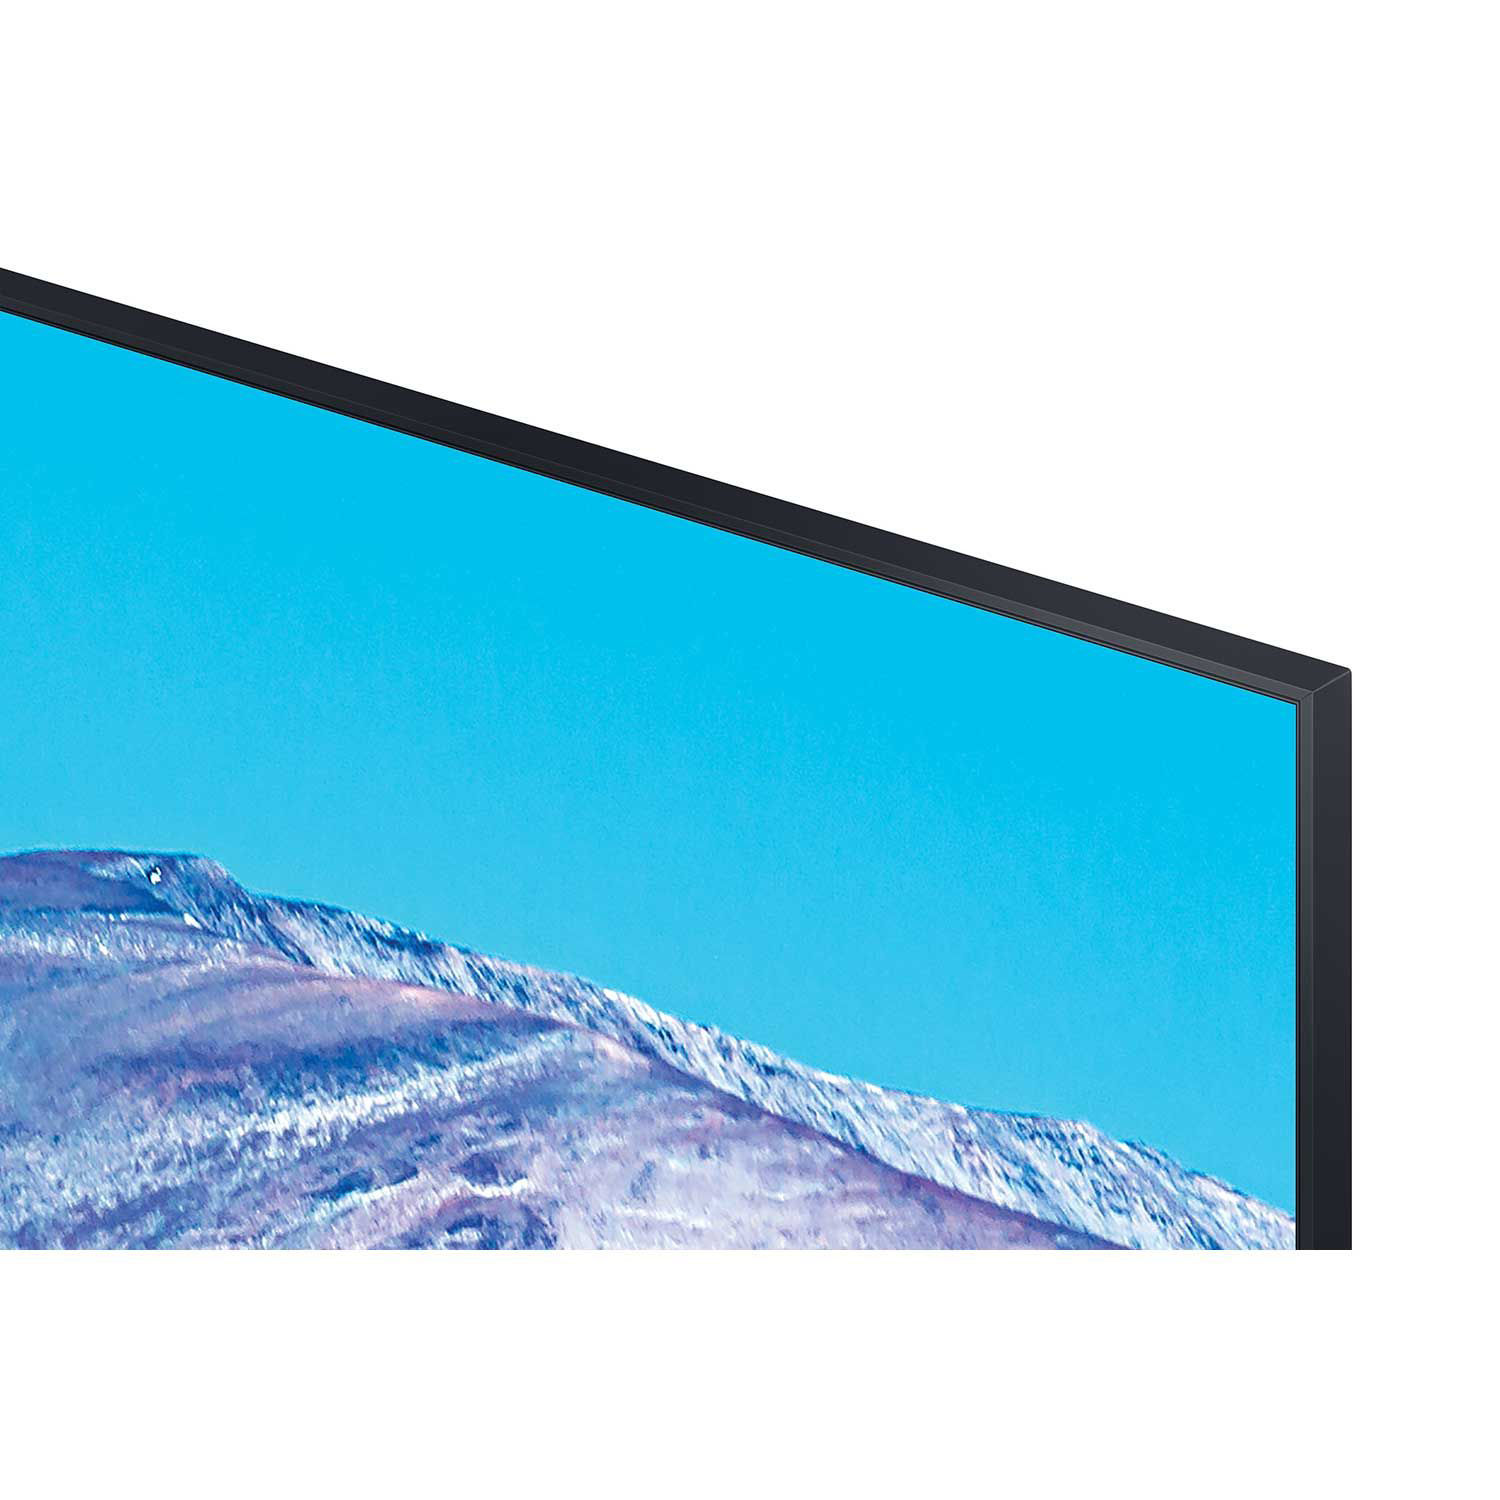 Picture of Samsung 65-Inch TU8000 4K UHD Smart TV with Alexa